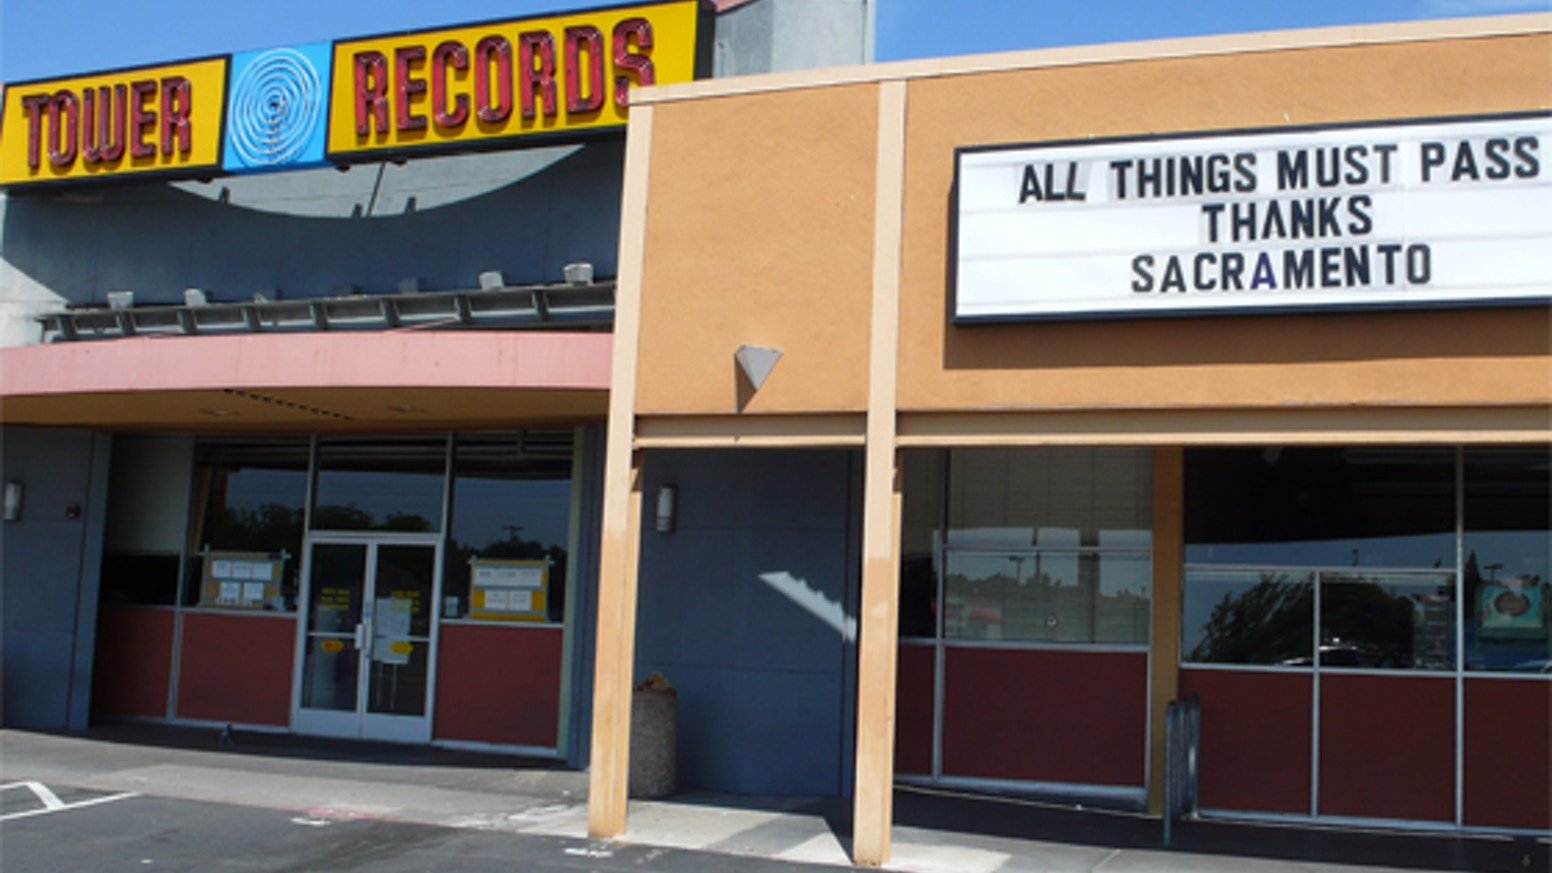 A documentary about the Rise and Fall of Tower Records.